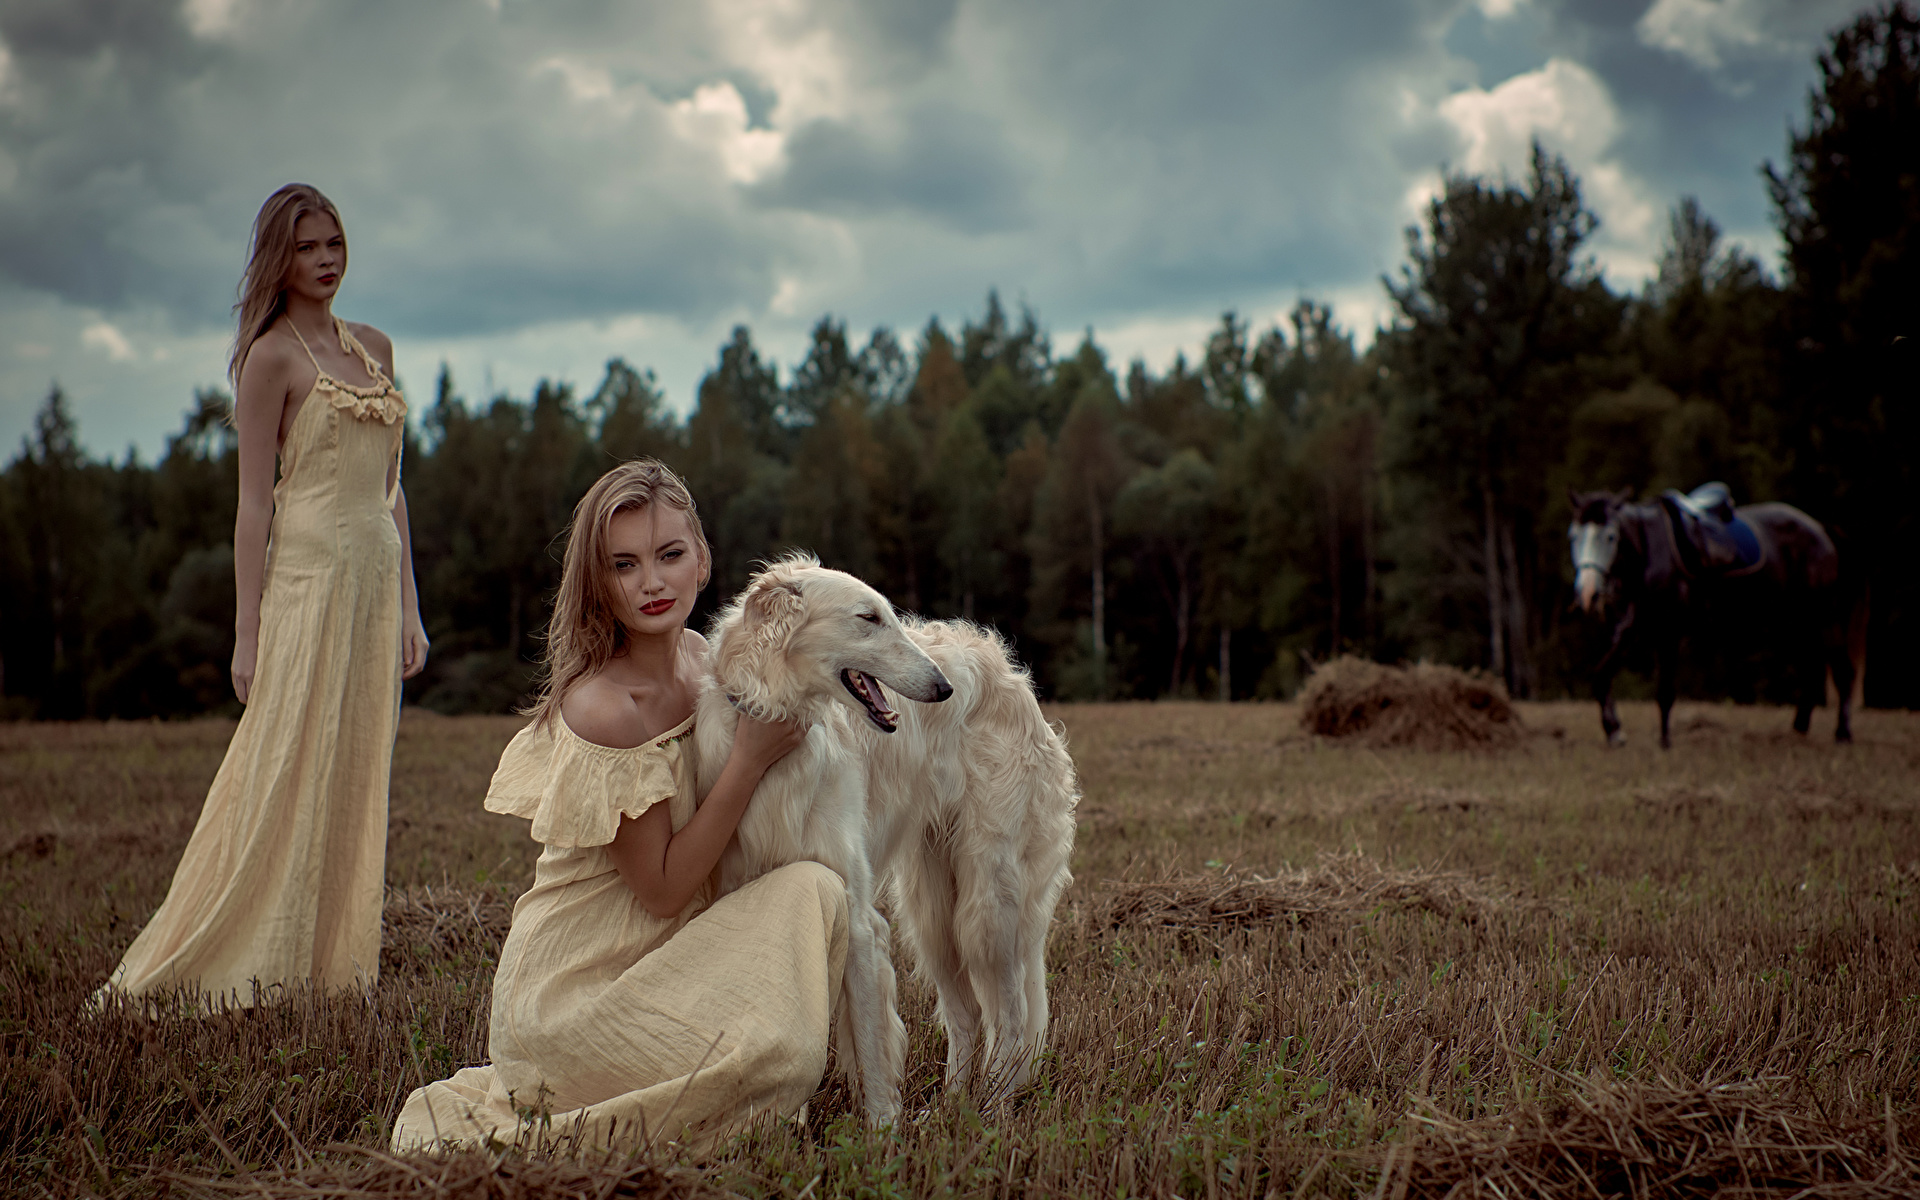 Picture Sighthound dog Russian hunting sighthound 2 young woman Animals frock 1920x1200 Dogs Two Girls female animal gown Dress